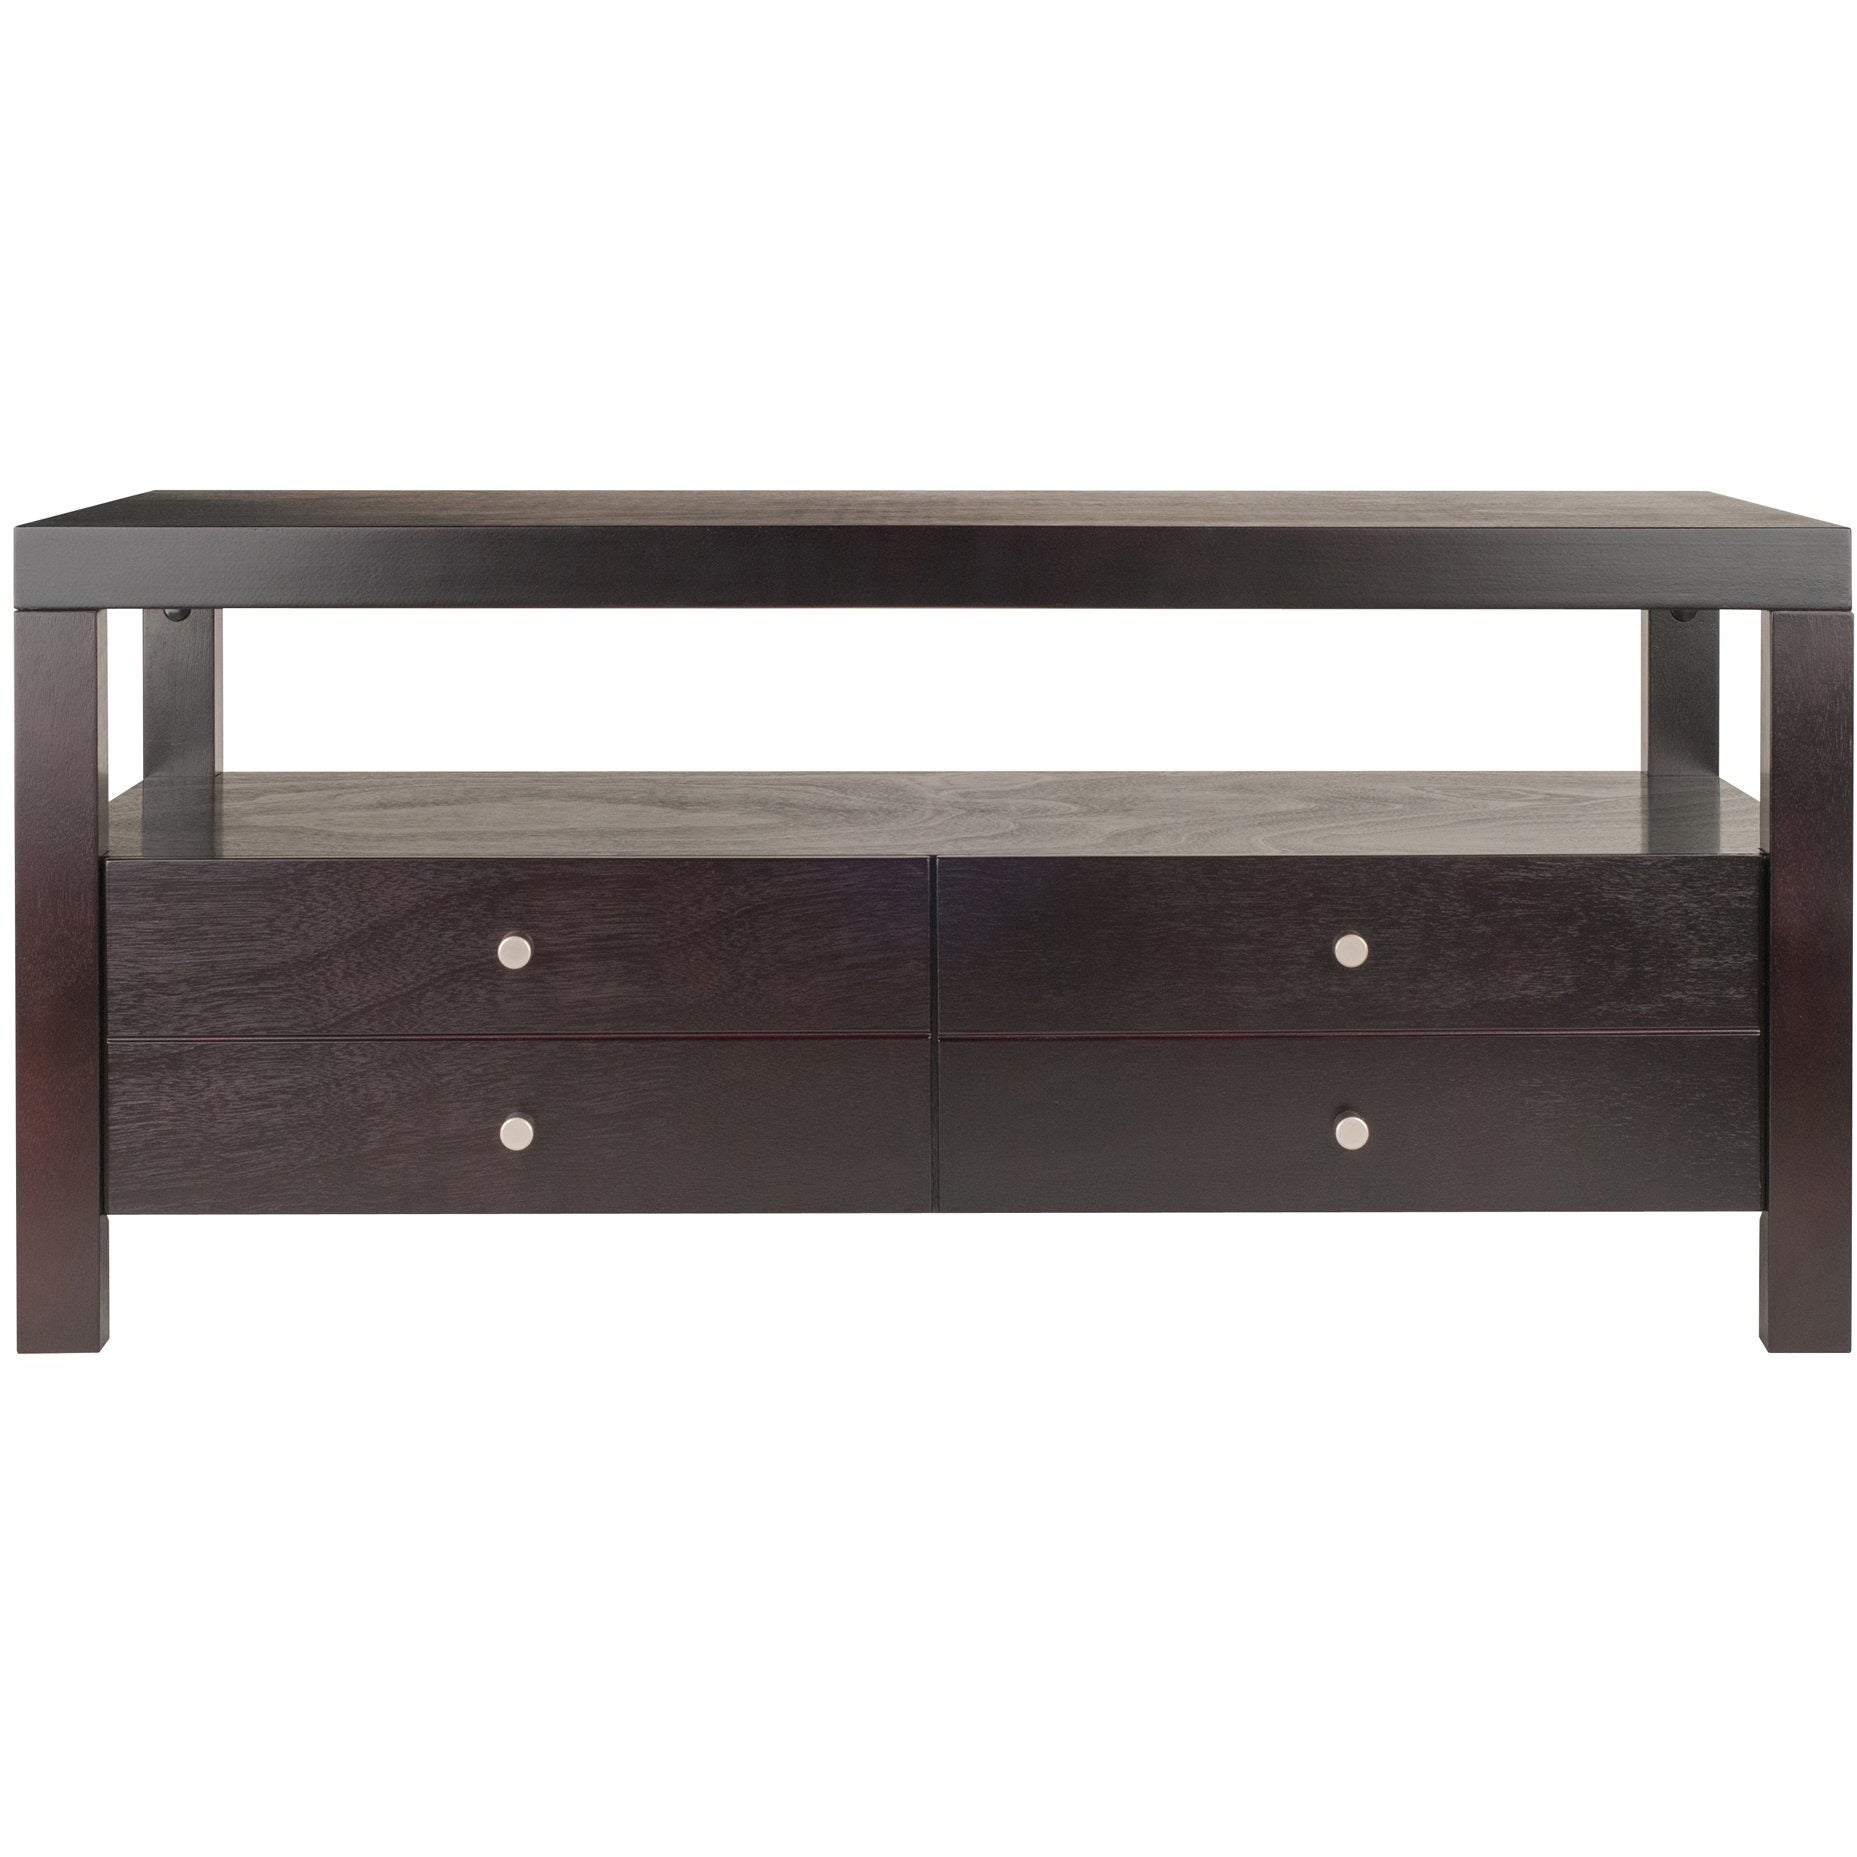 brown drawer cfm drawers with white legs shelving manhattan tv liberty spaces in mid solid index rustic comfort century wood stand and modern shelf